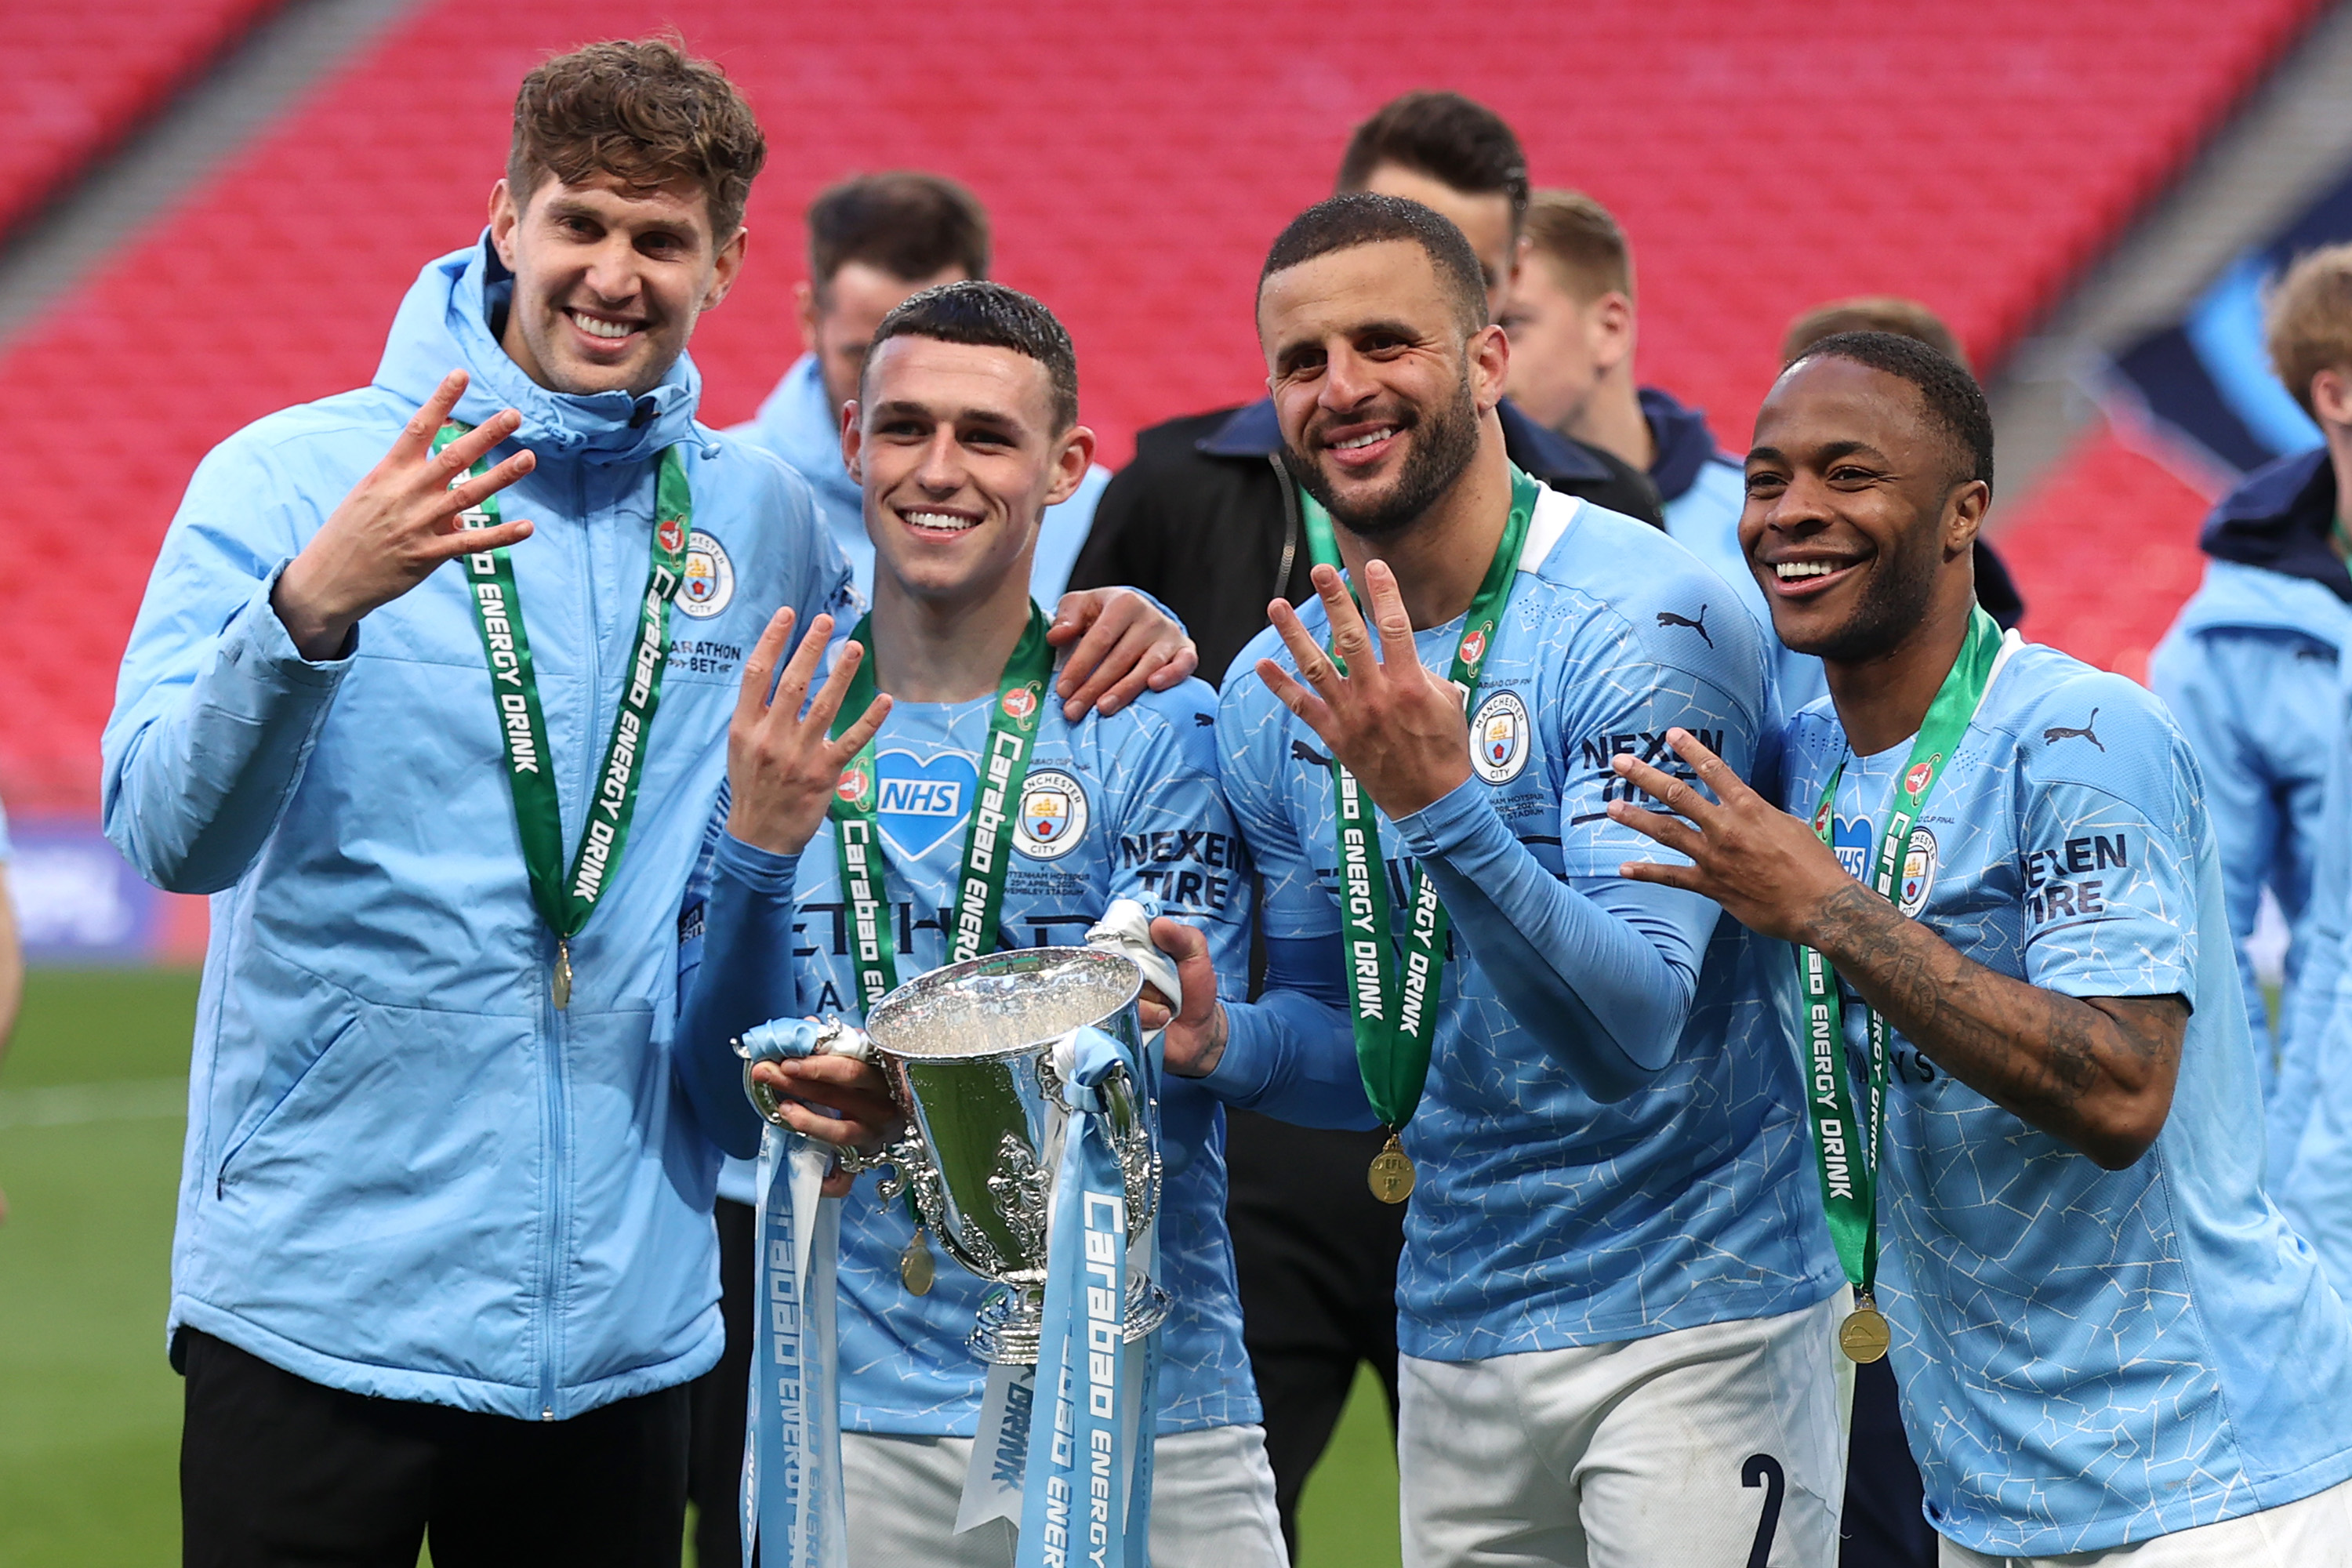 Manchester City clinches fourth consecutive League Cup title as fans return to Wembley Stadium